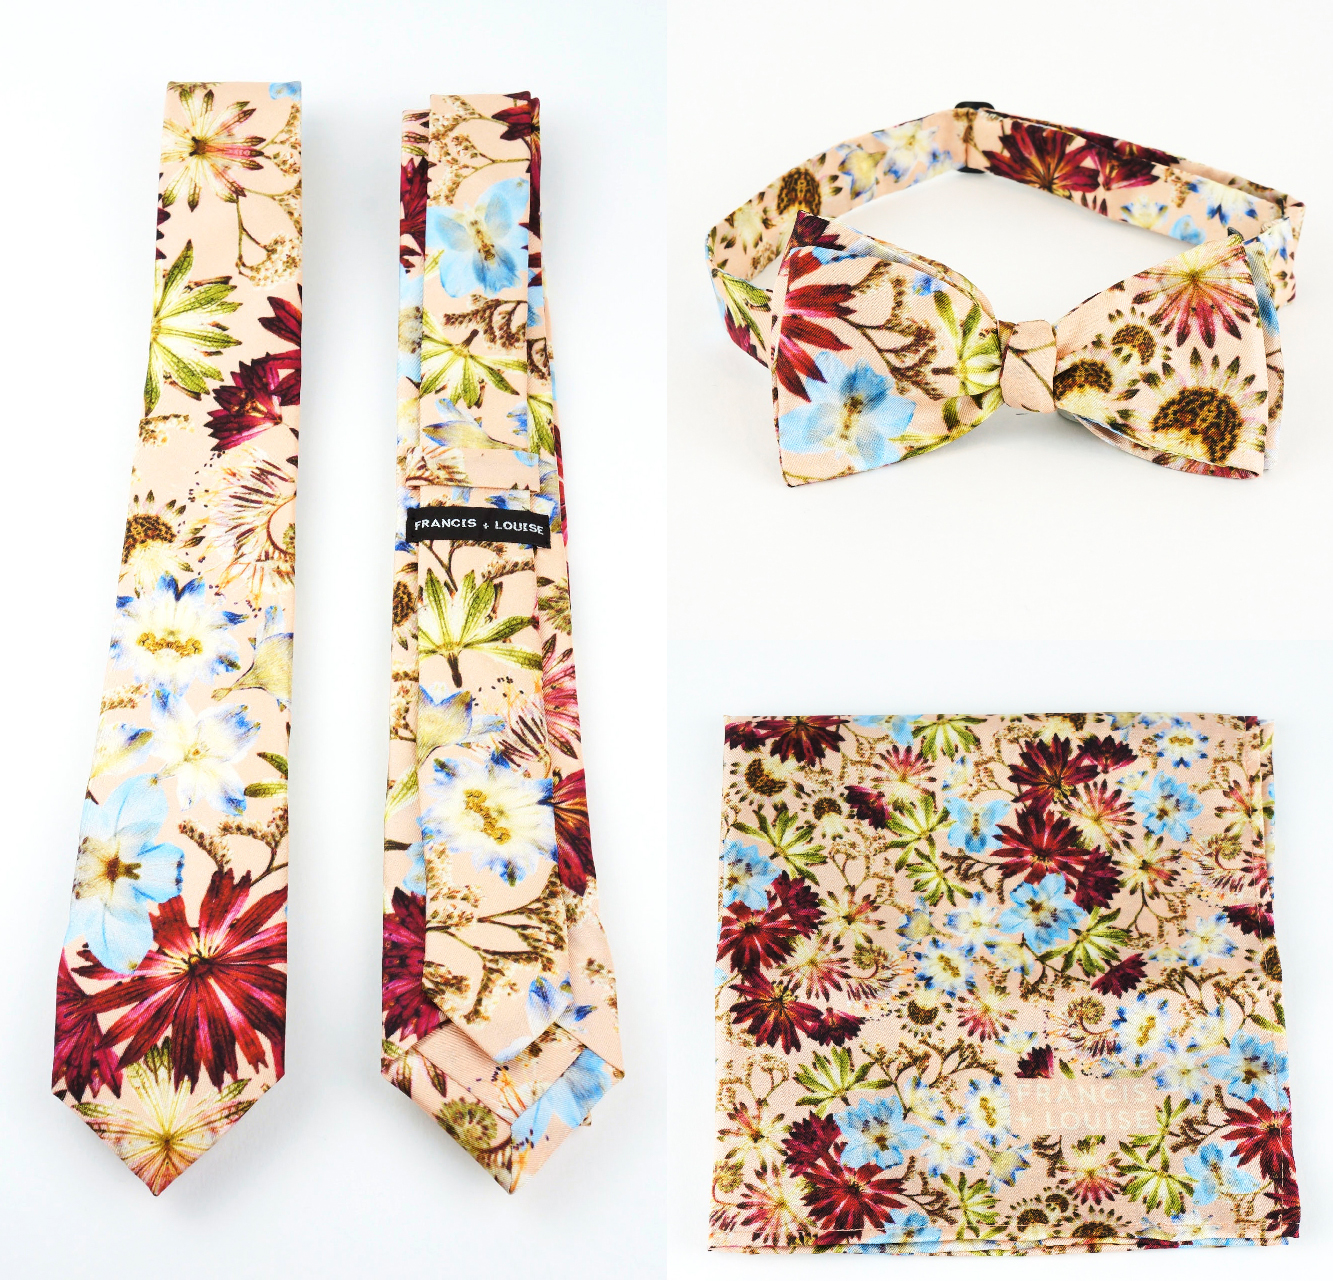 Francis + Louise - Kingscote peach - Ties, Bow ties and matching Pocket squares.